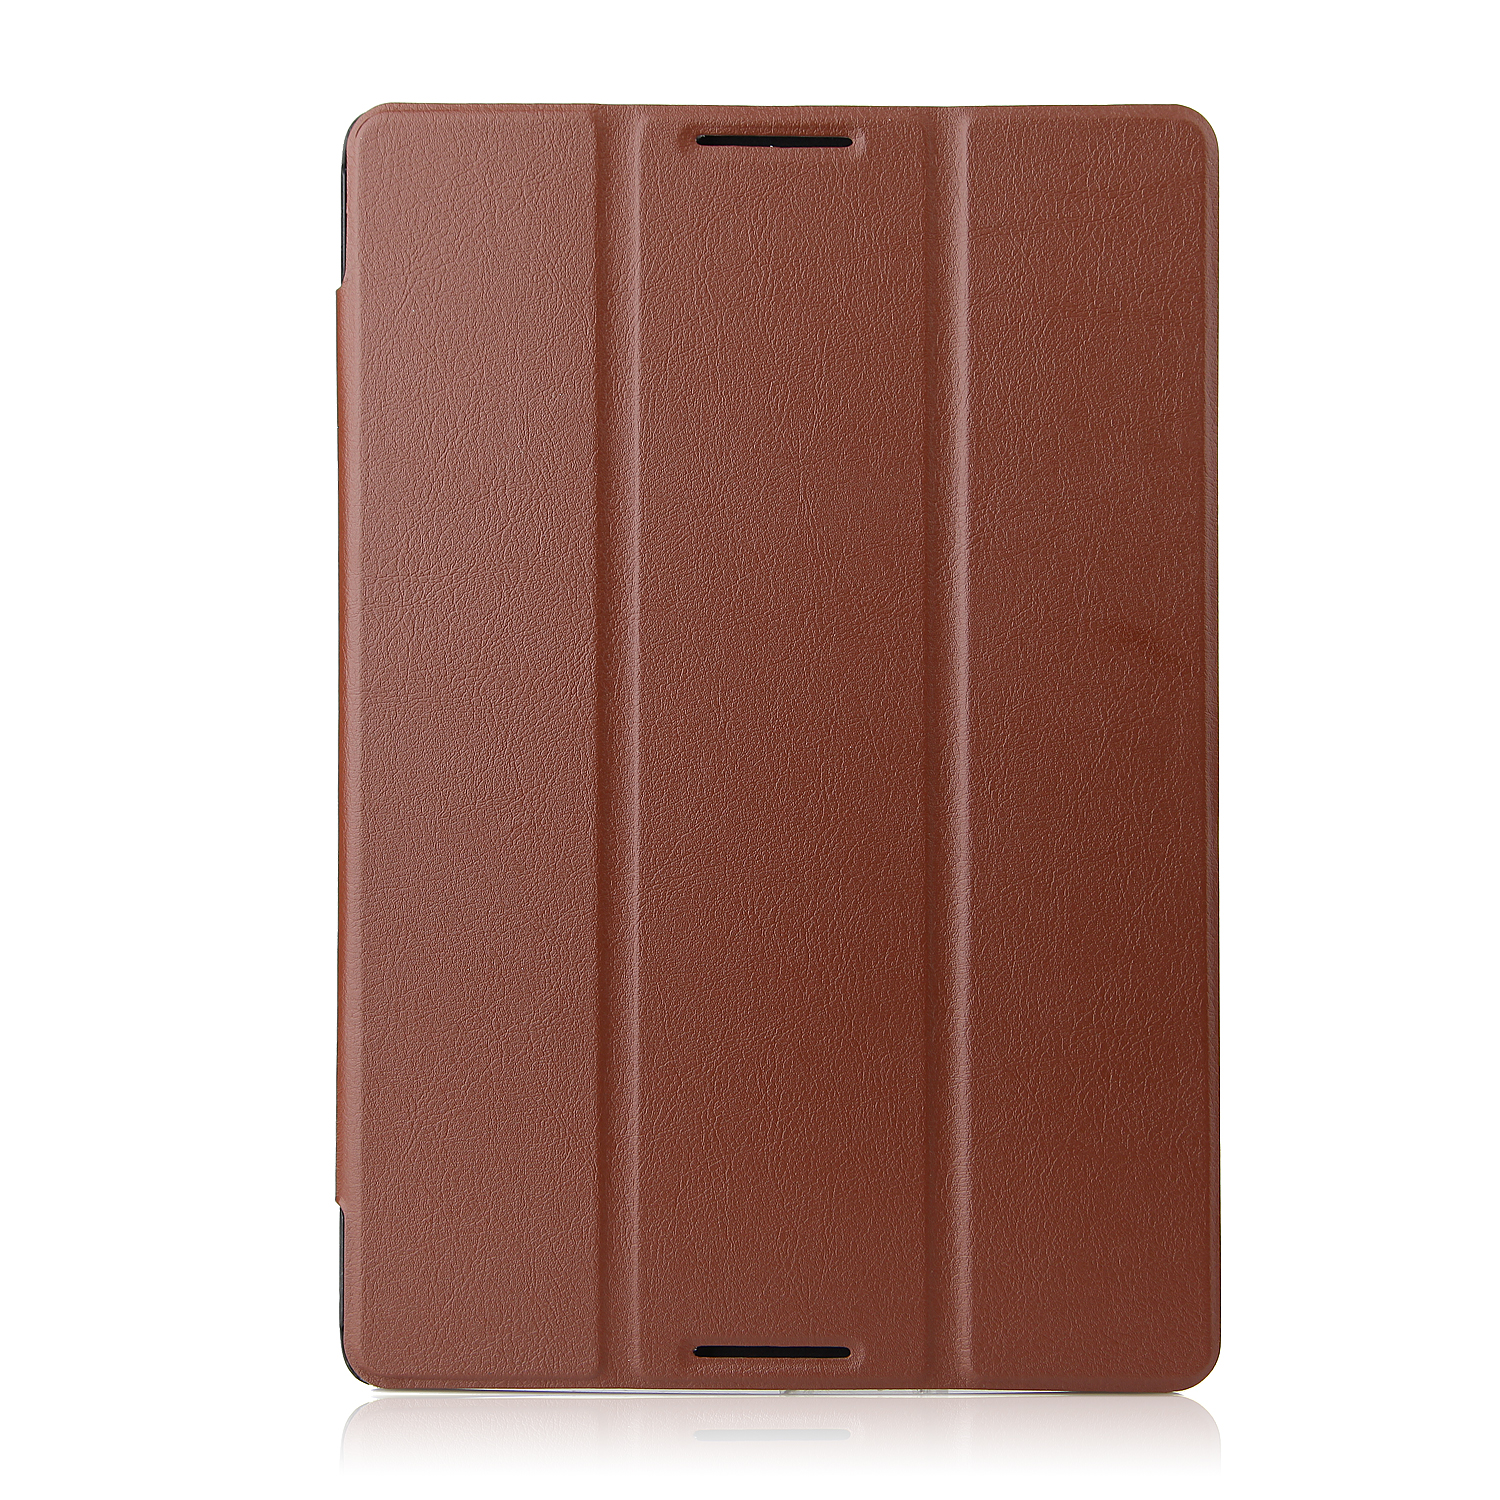 Protective PU Leather Stand Case Cover for Lenovo A7600 Tablet PC Brown